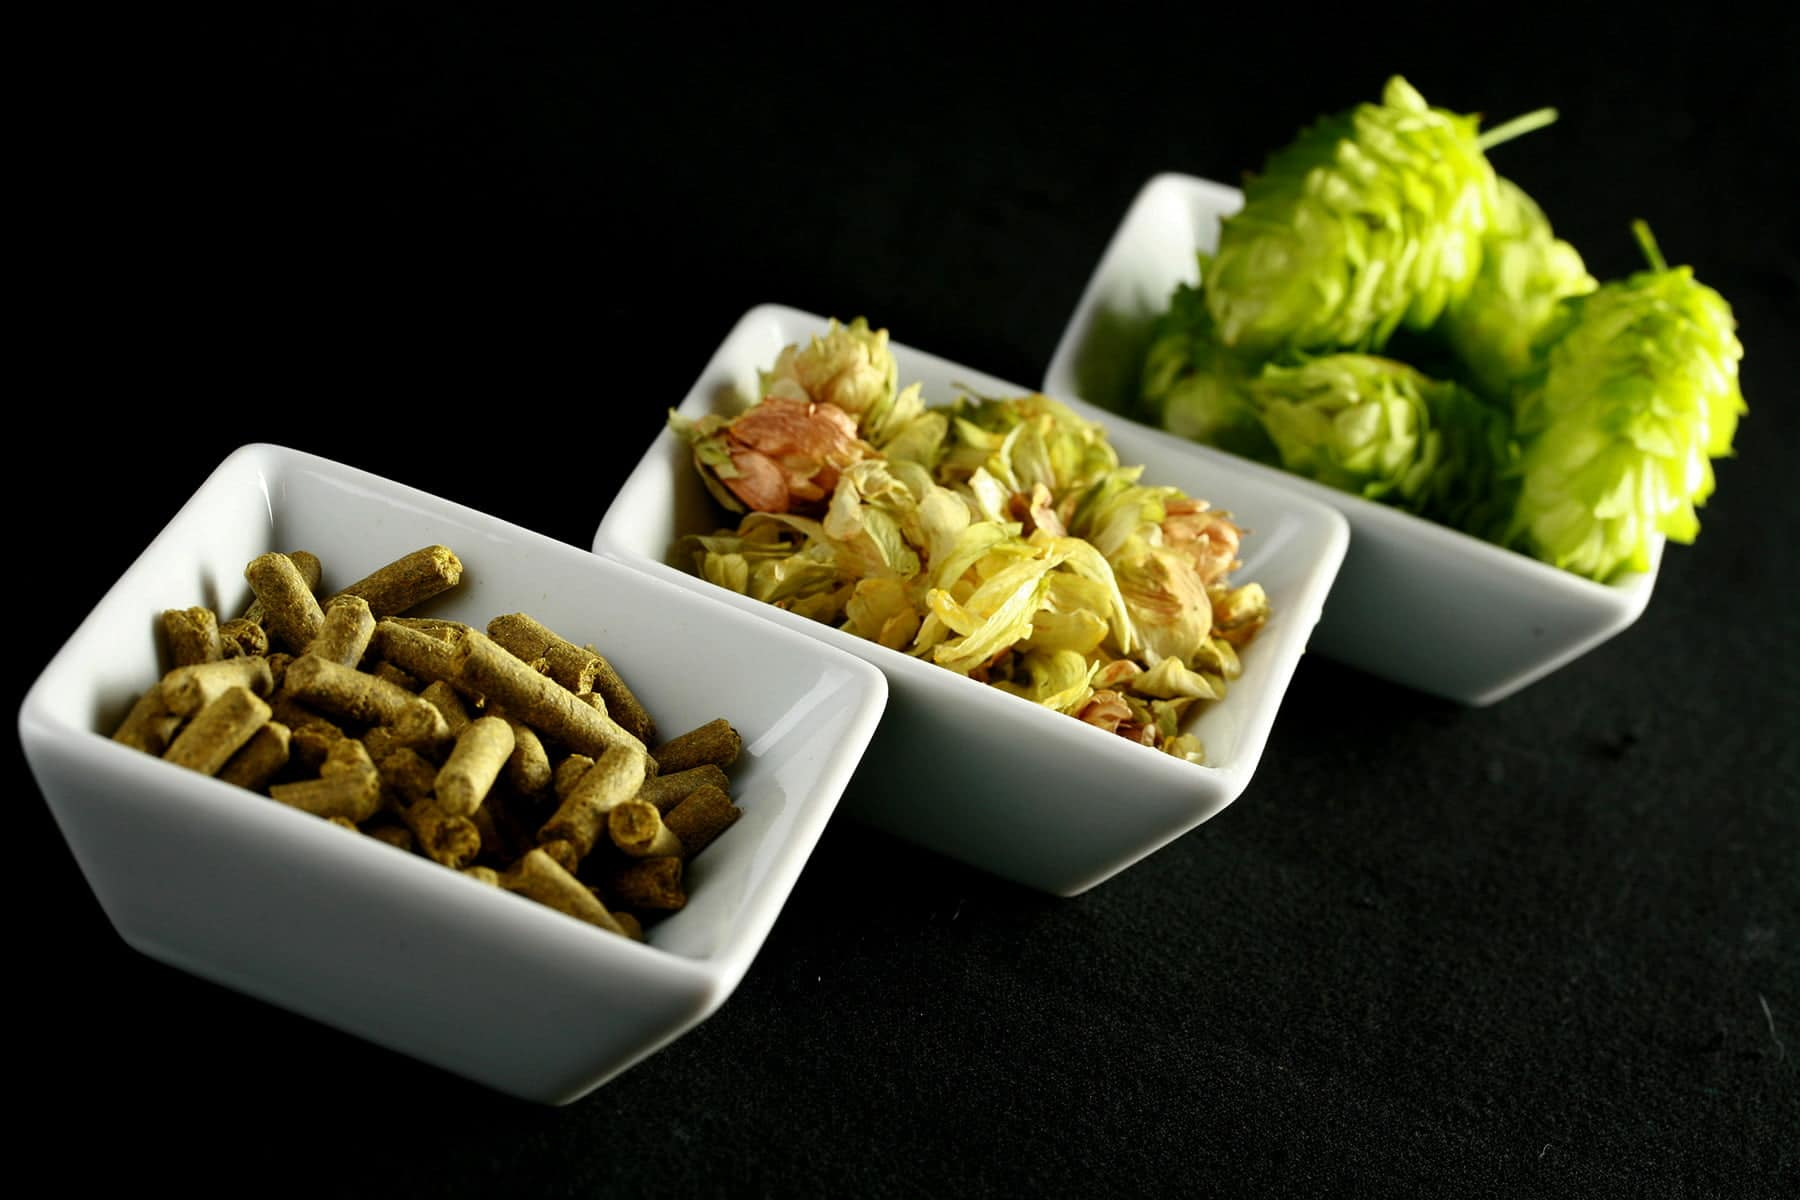 3 small white bowls hold hops in the 3 forms: Pellets, leaves, and fresh.